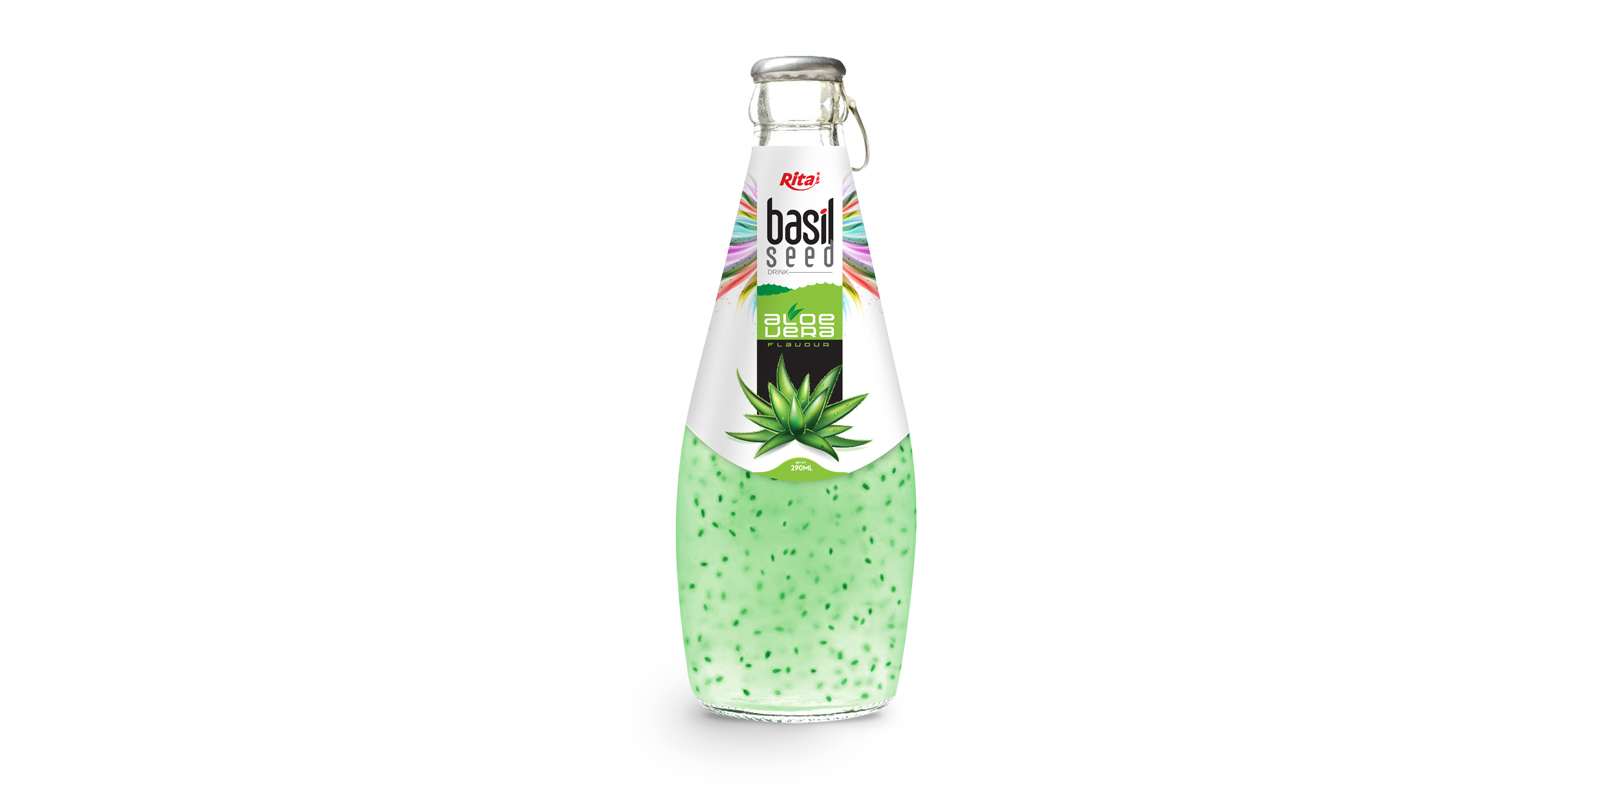 Basil seed with aloe vera  glass bottle 290ml